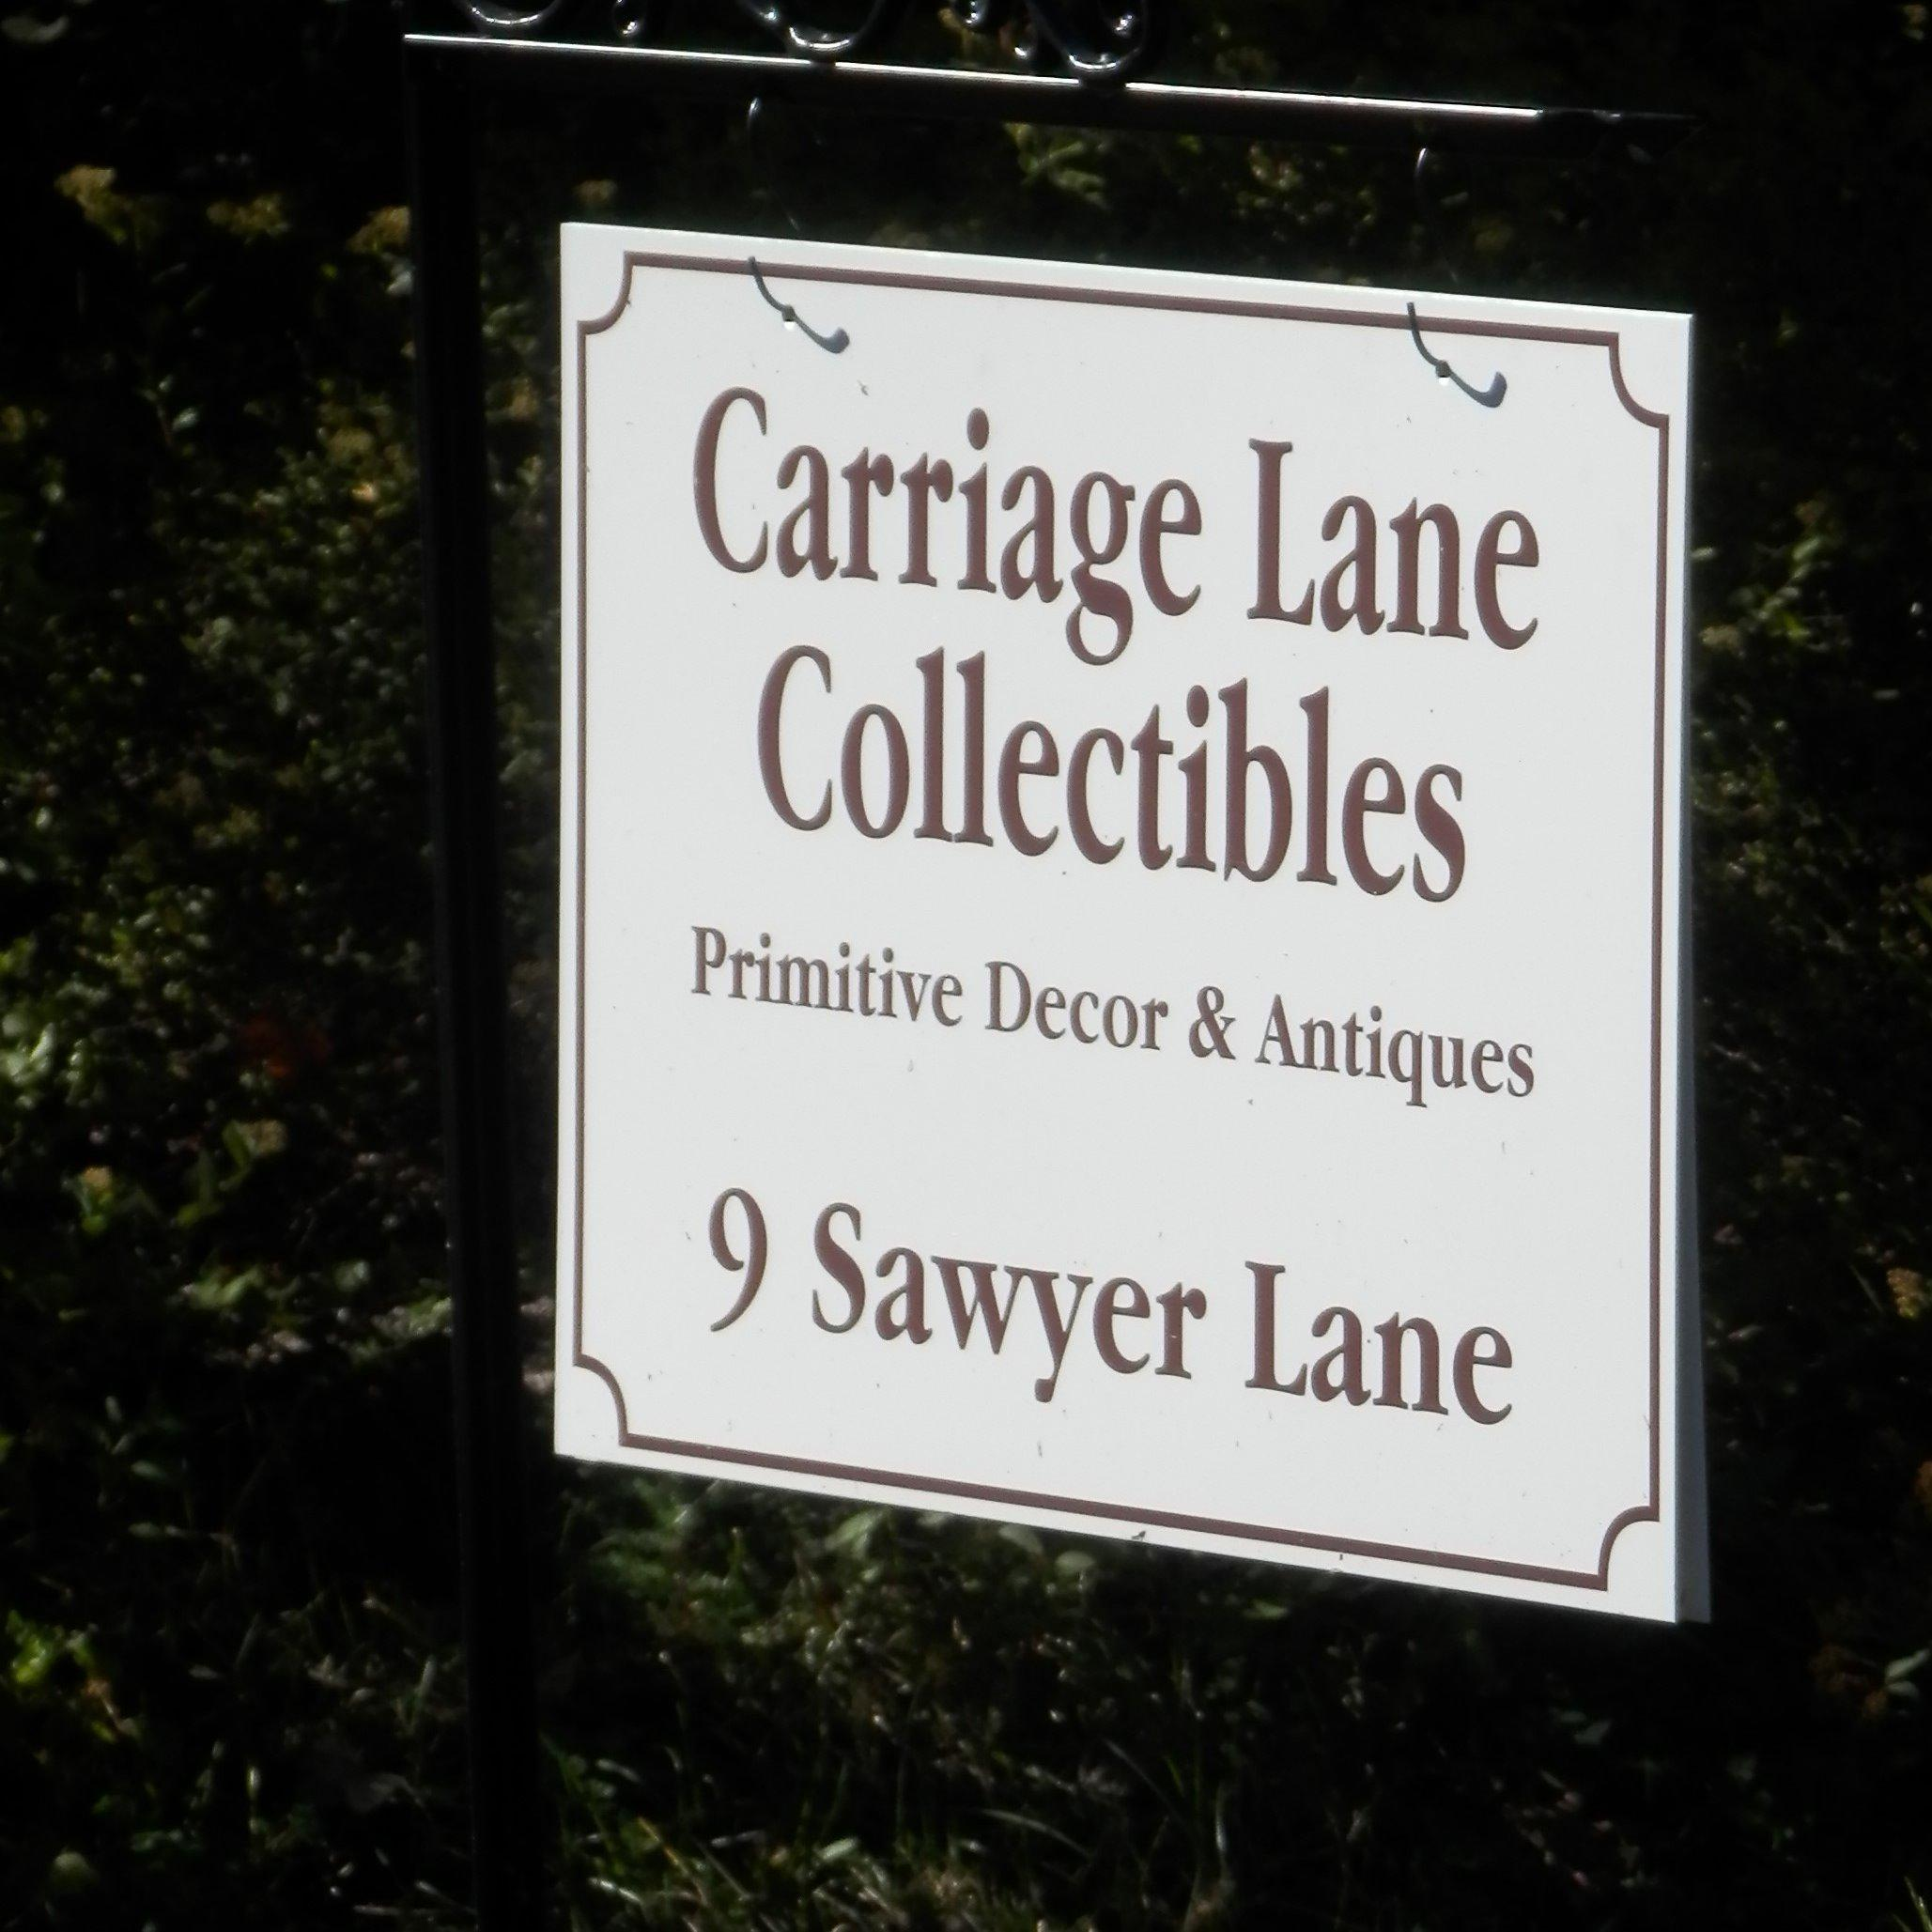 Carriage Lane Collectibles